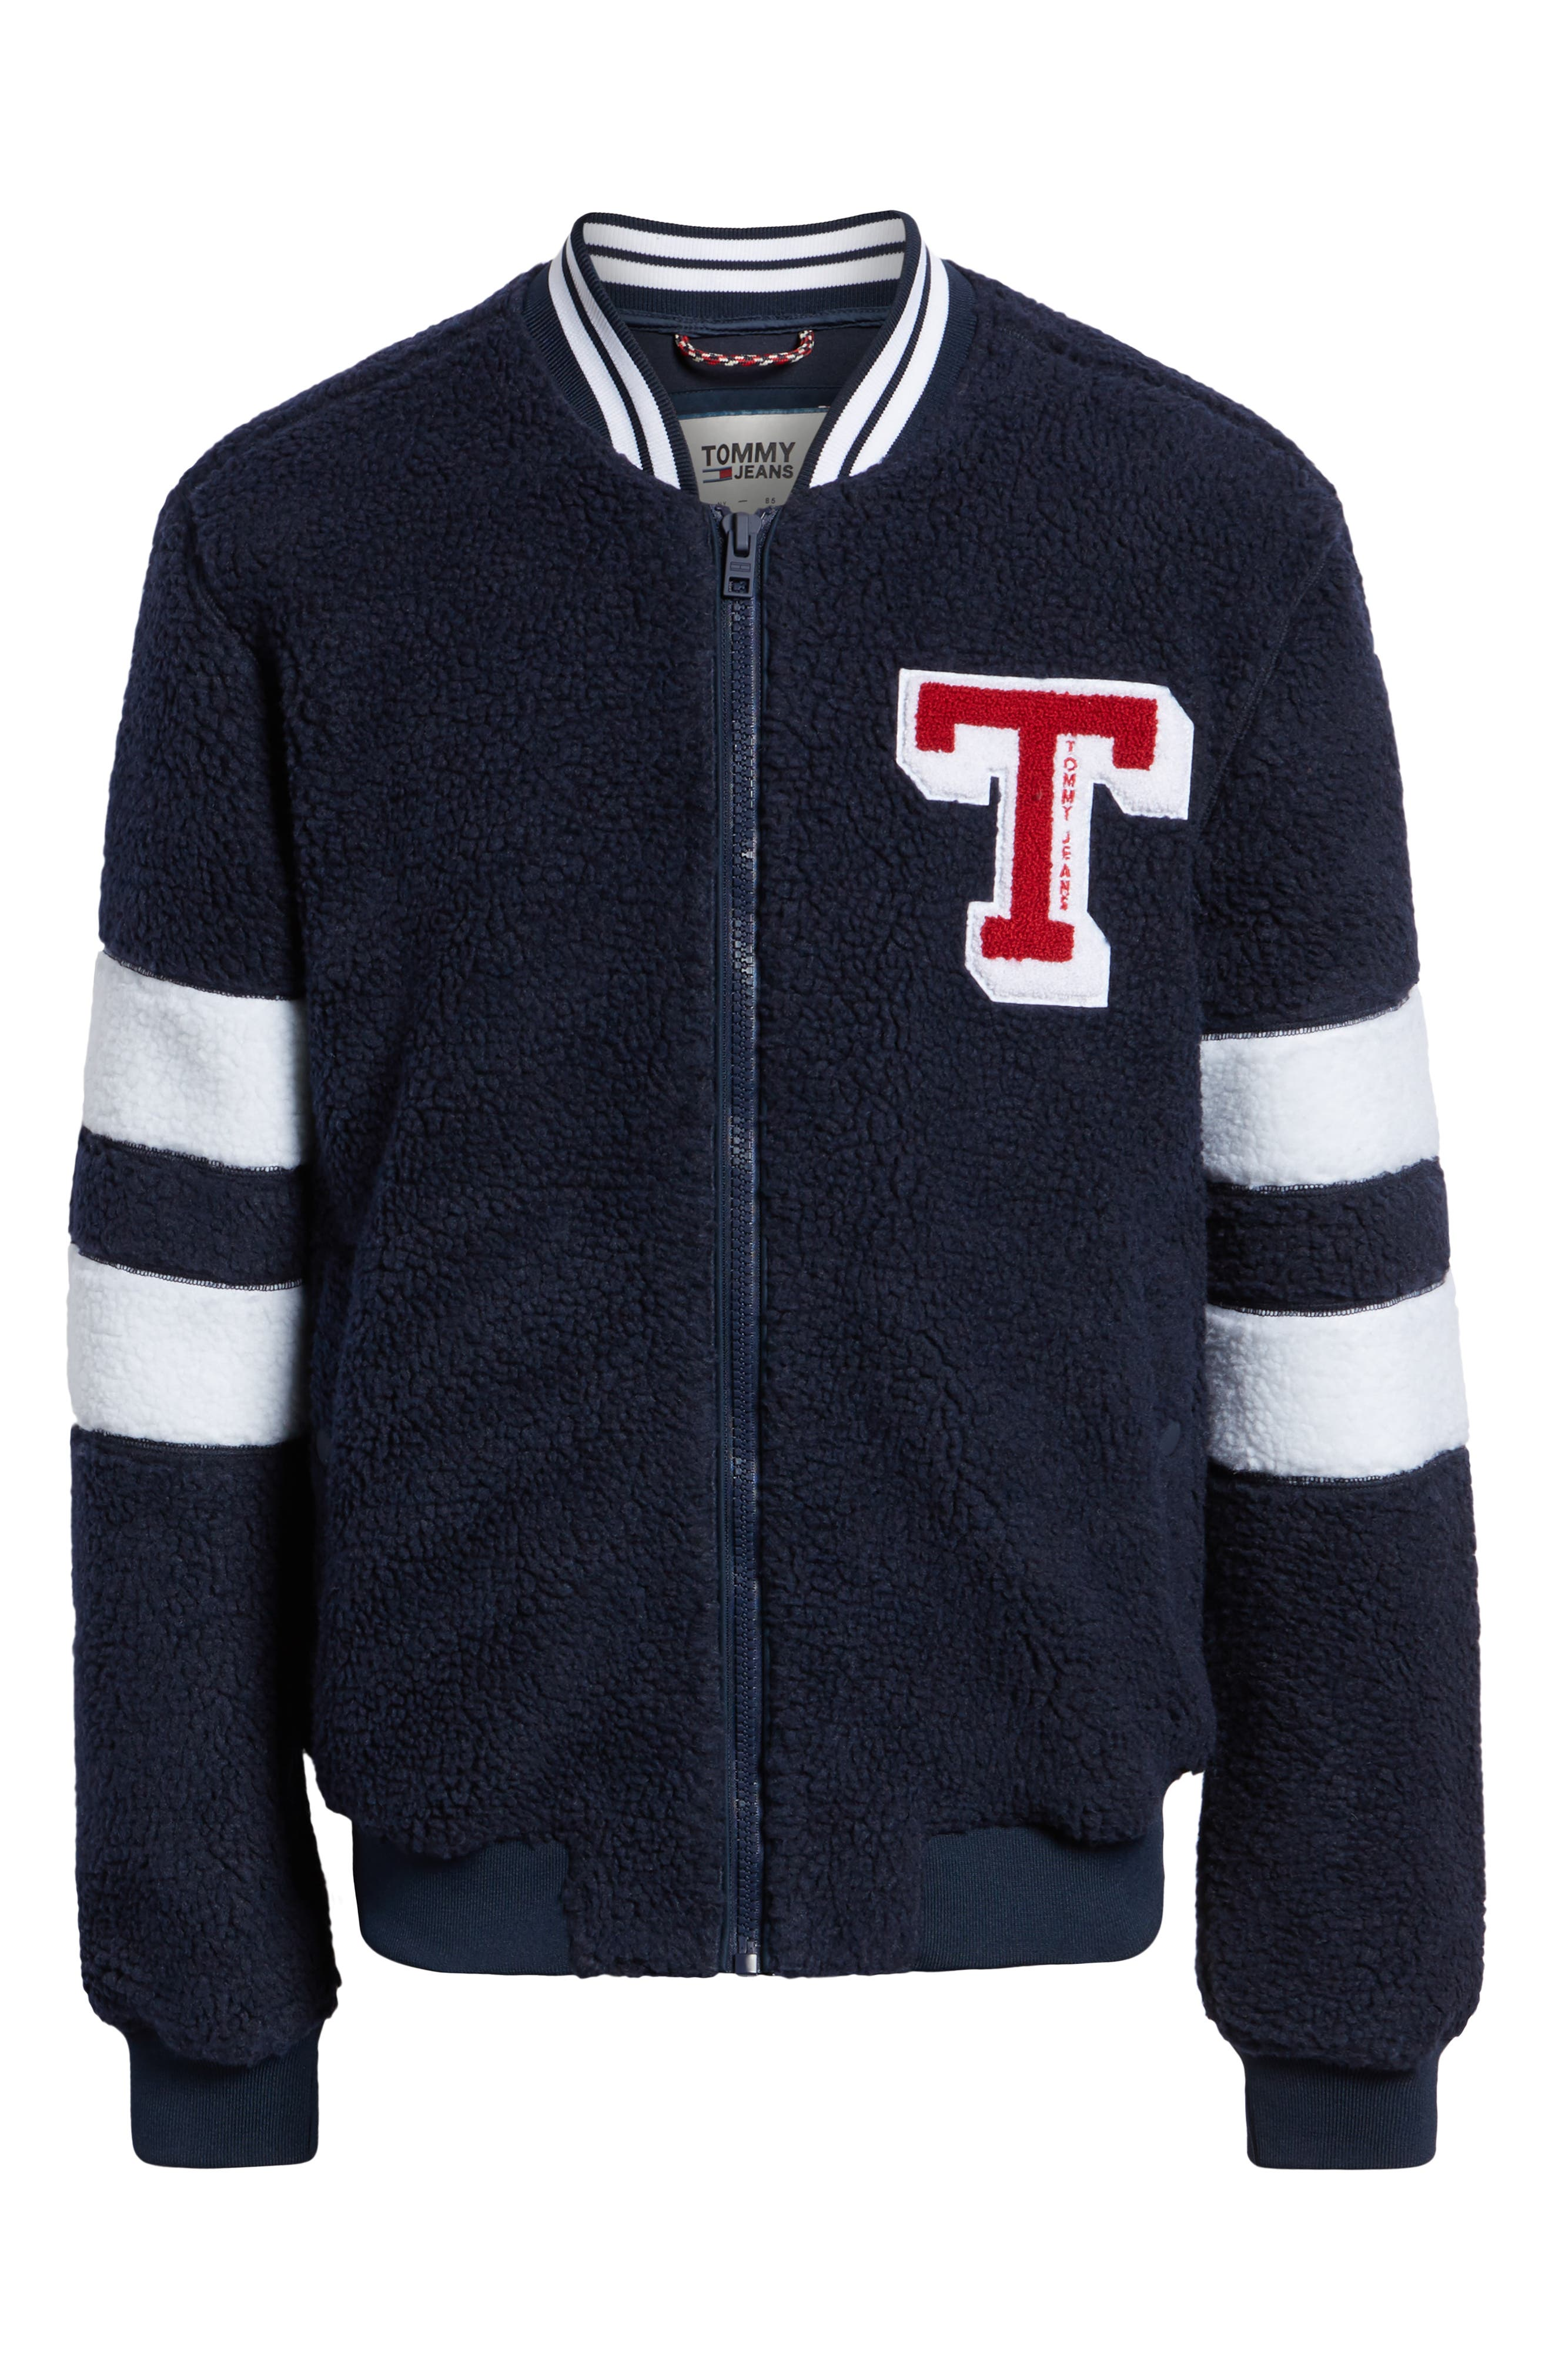 TOMMY JEANS,                             TJM Teddy Bomber Jacket,                             Alternate thumbnail 6, color,                             400